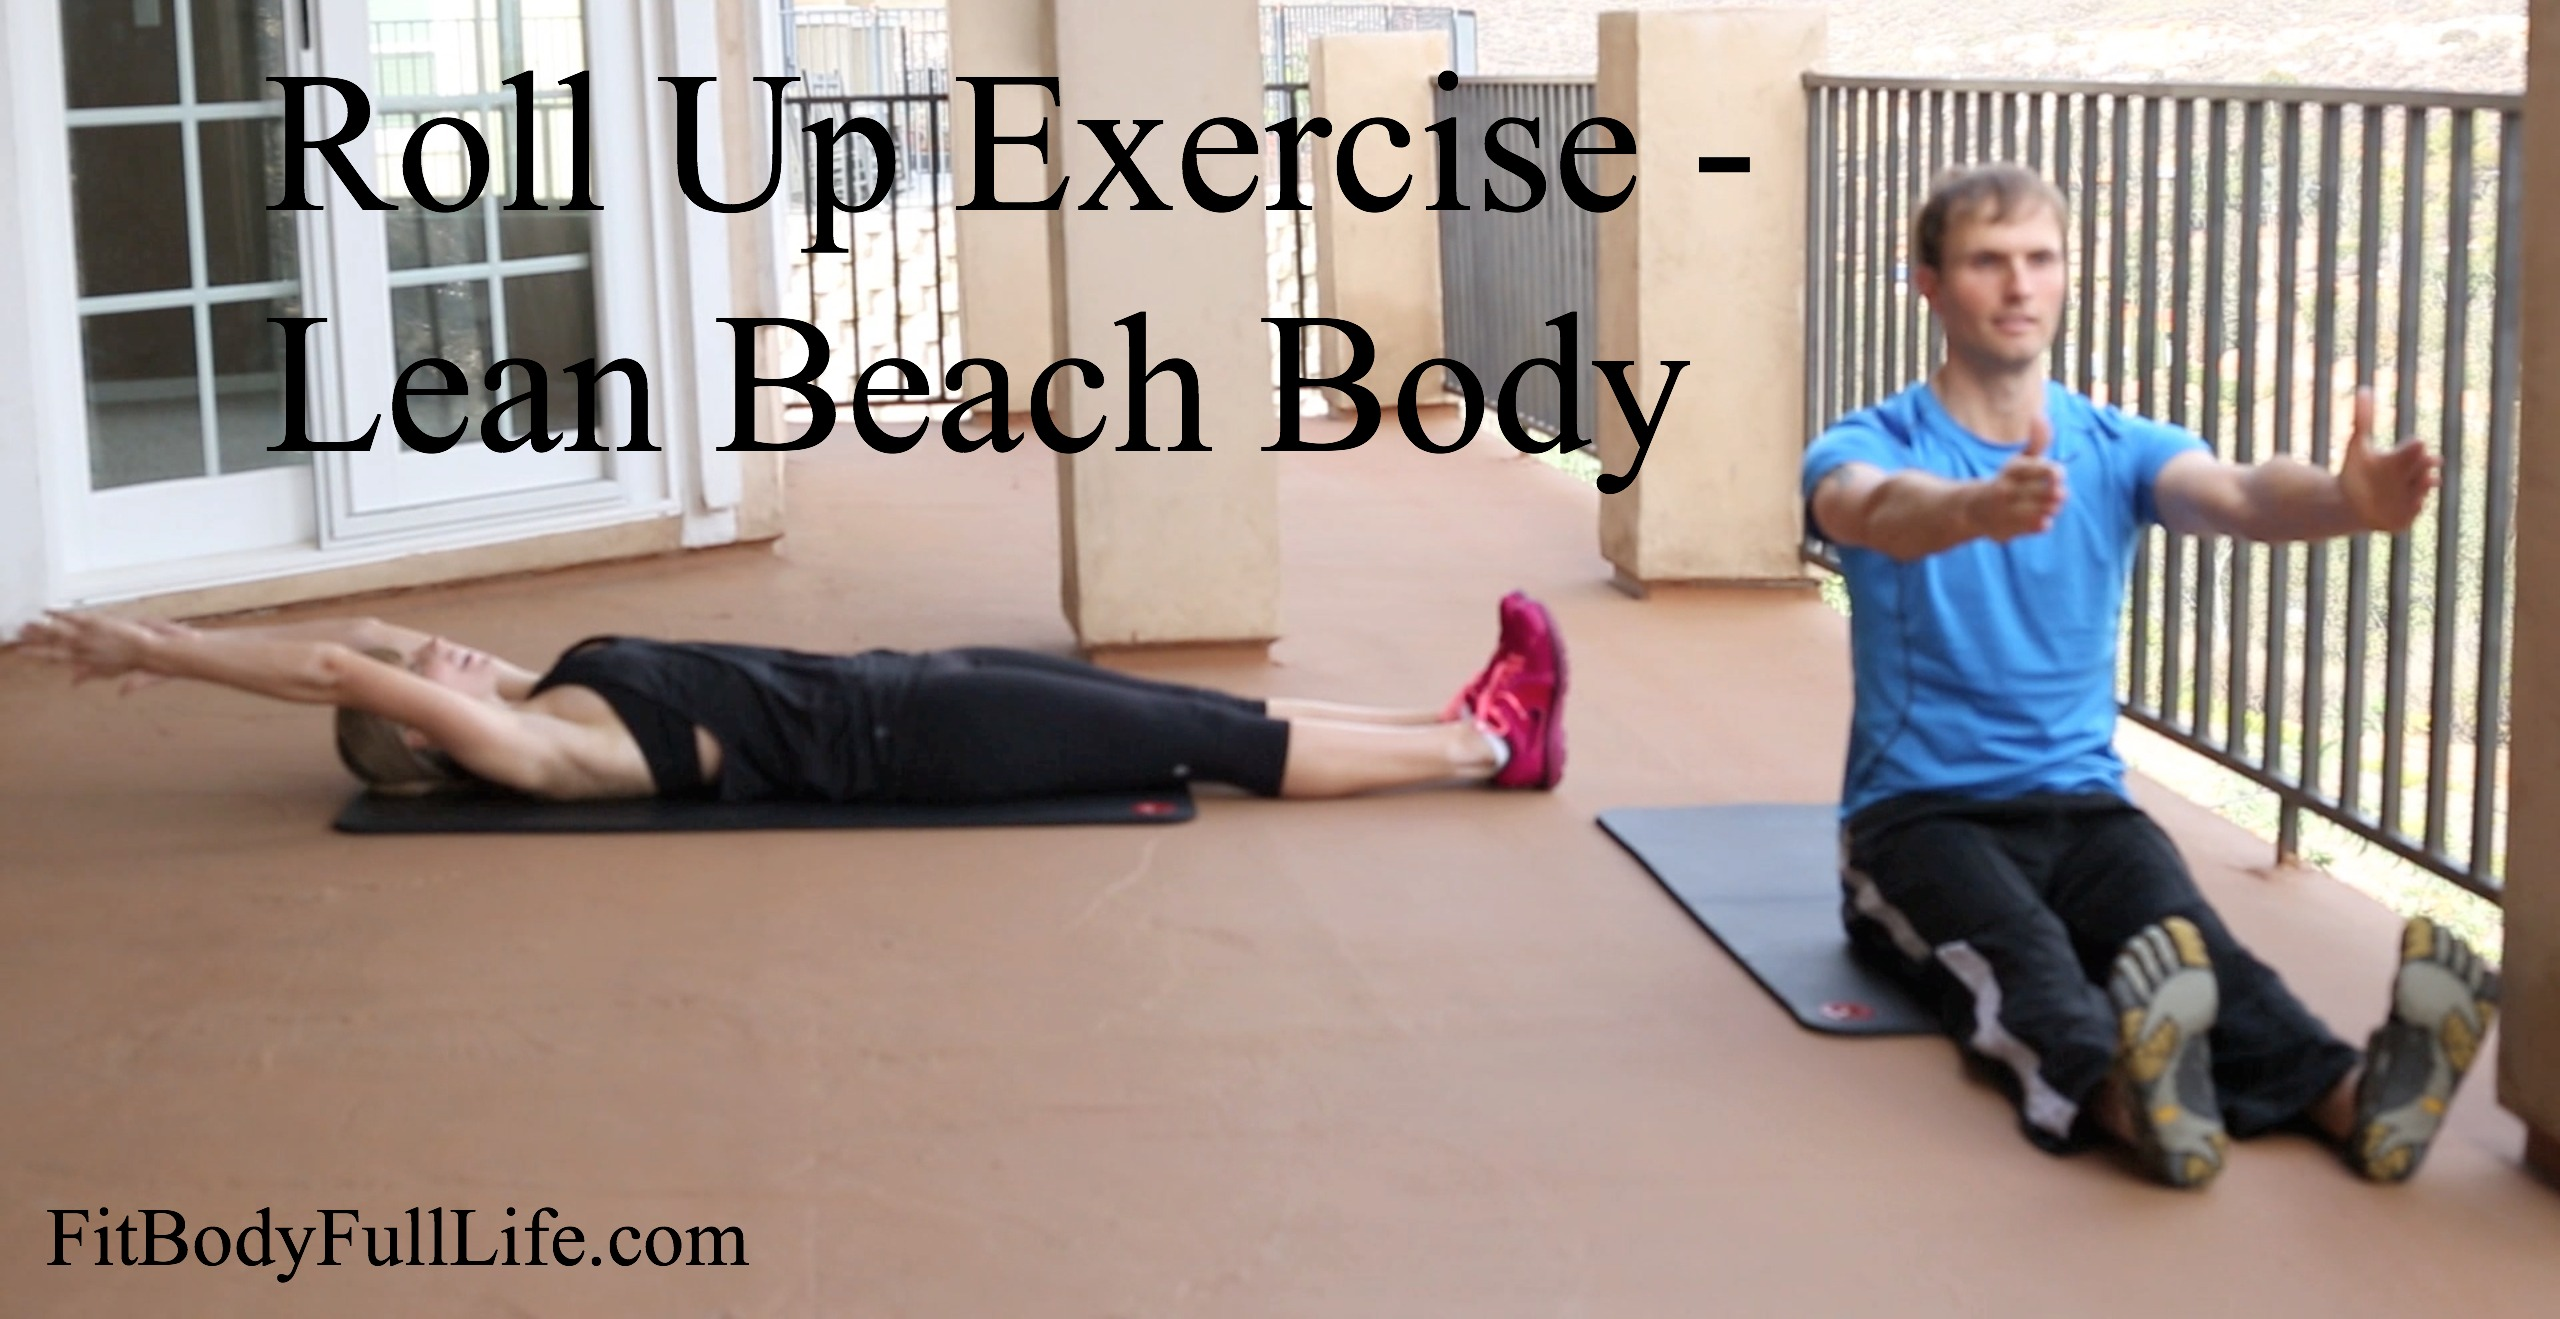 Roll Up Exercise - Lean Beach Body